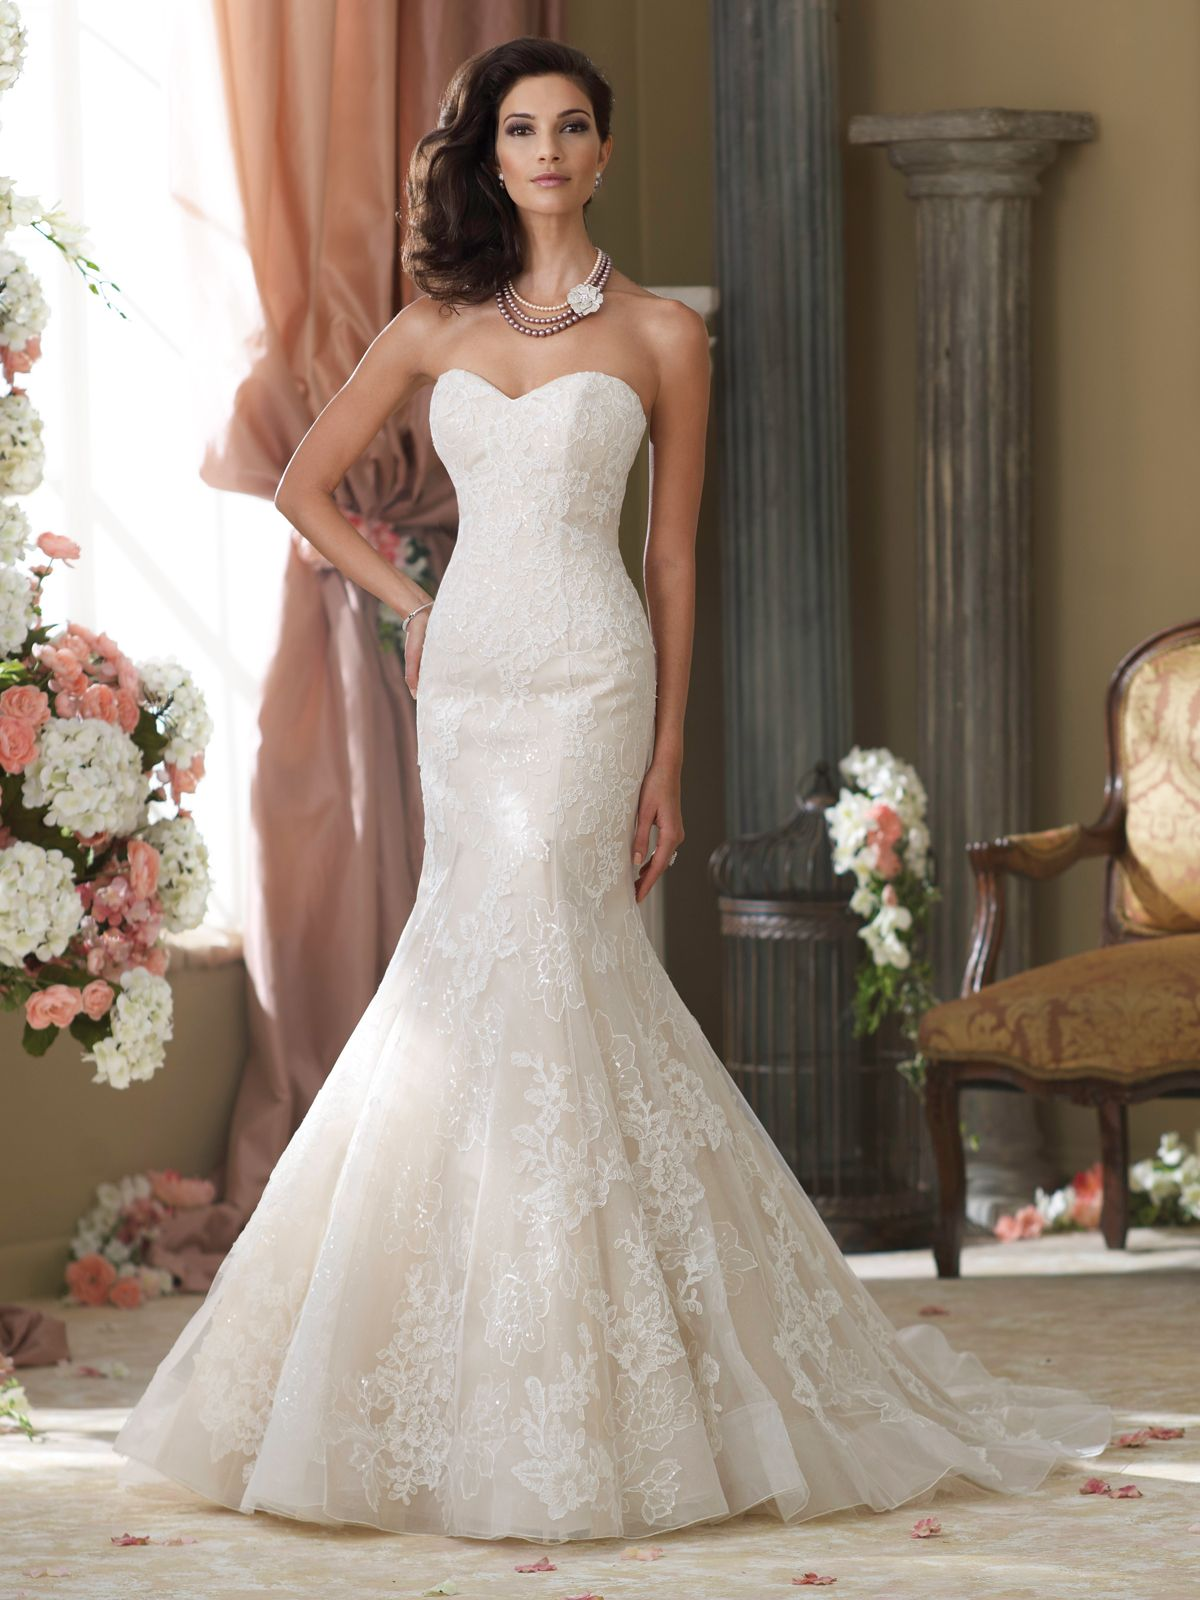 sweetheart mermaid wedding dresses Wedding Dresses Collection Strapless lace tulle organza and sequin over satin mermaid